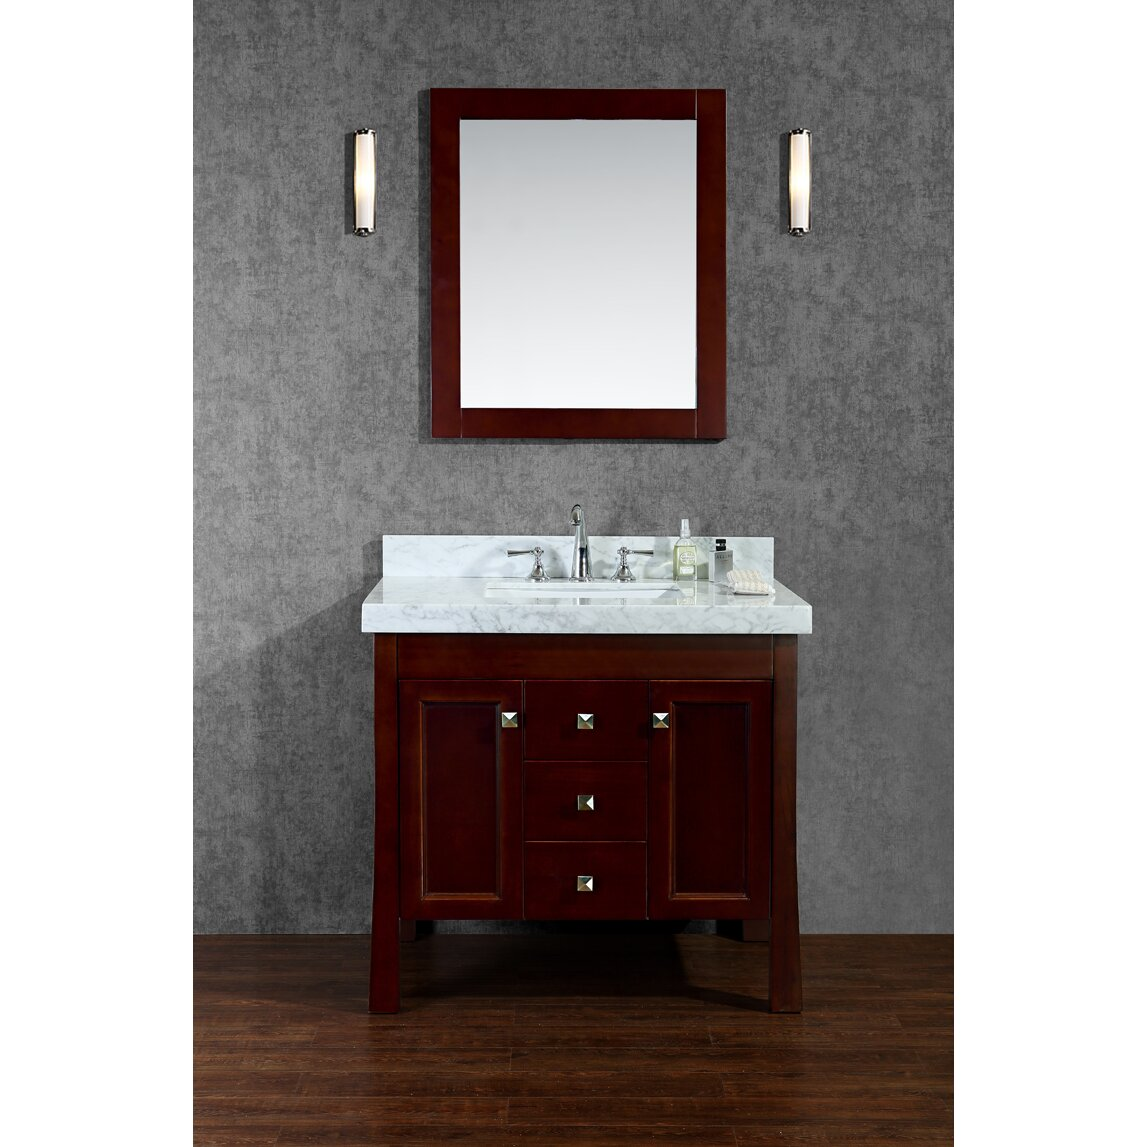 Ariel bath greenbrier 36 single bathroom vanity set with for Bath and vanity set